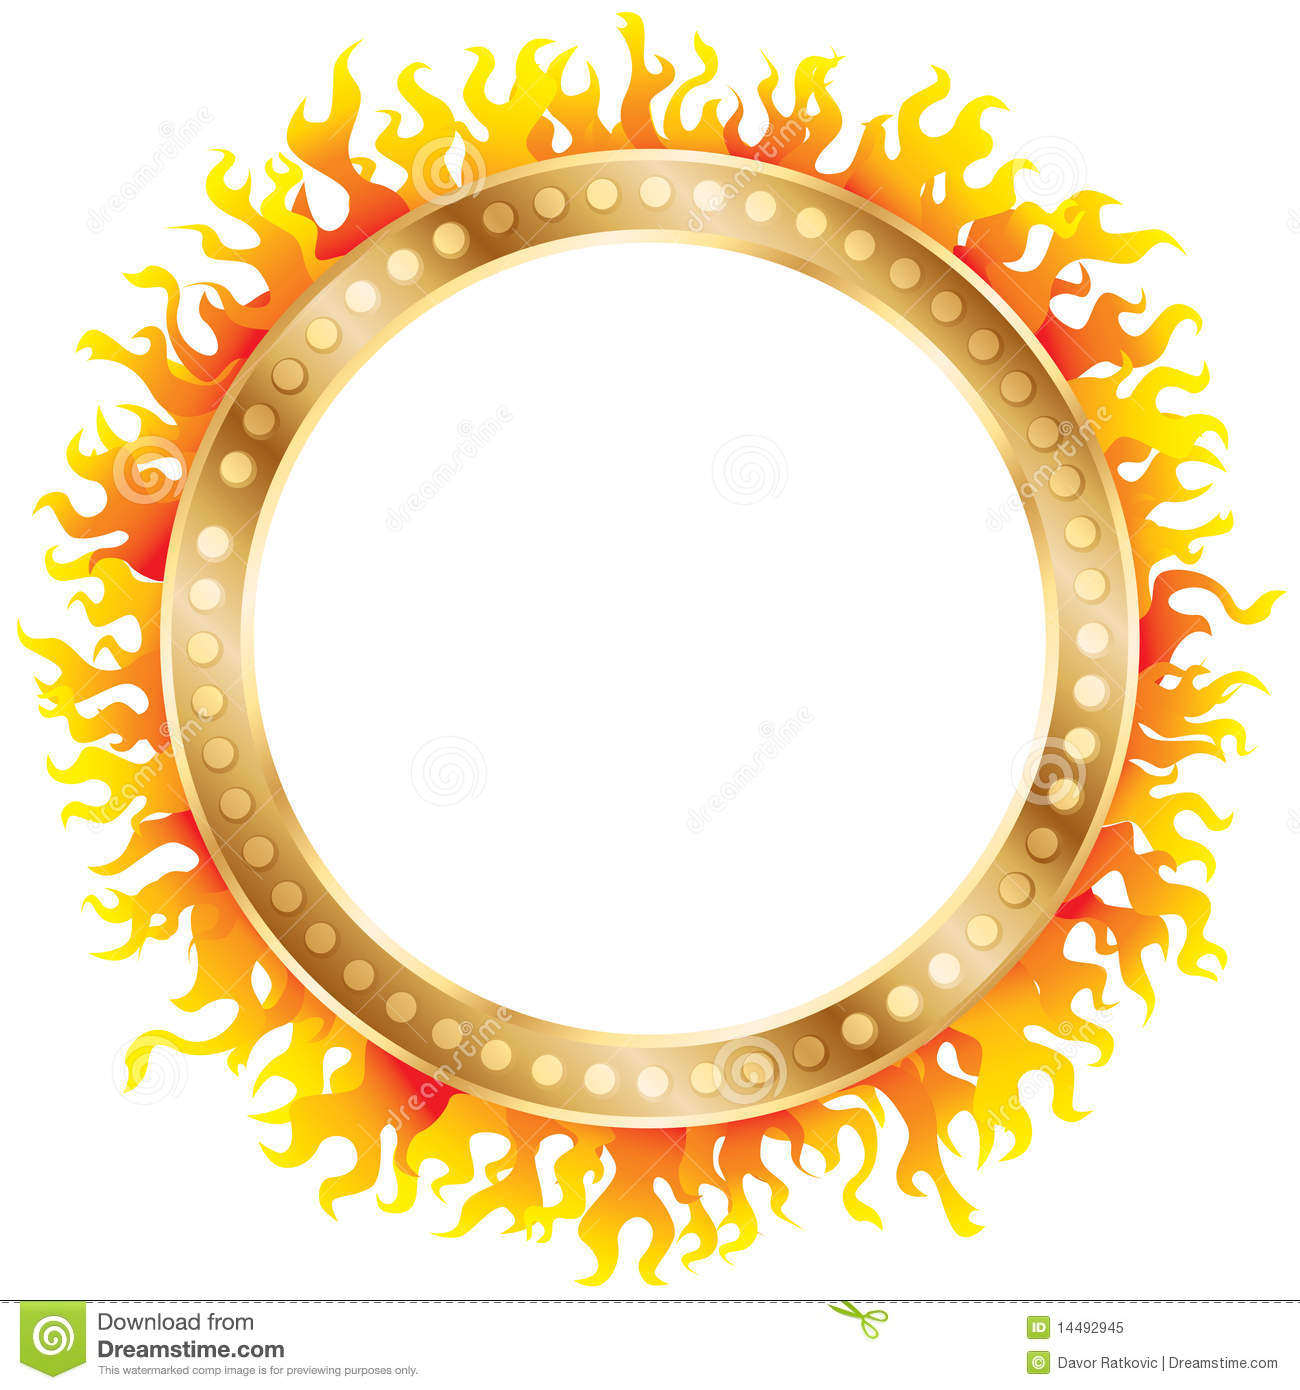 Ring Of Fire Royalty Free Stock Photo - Image: 14492945